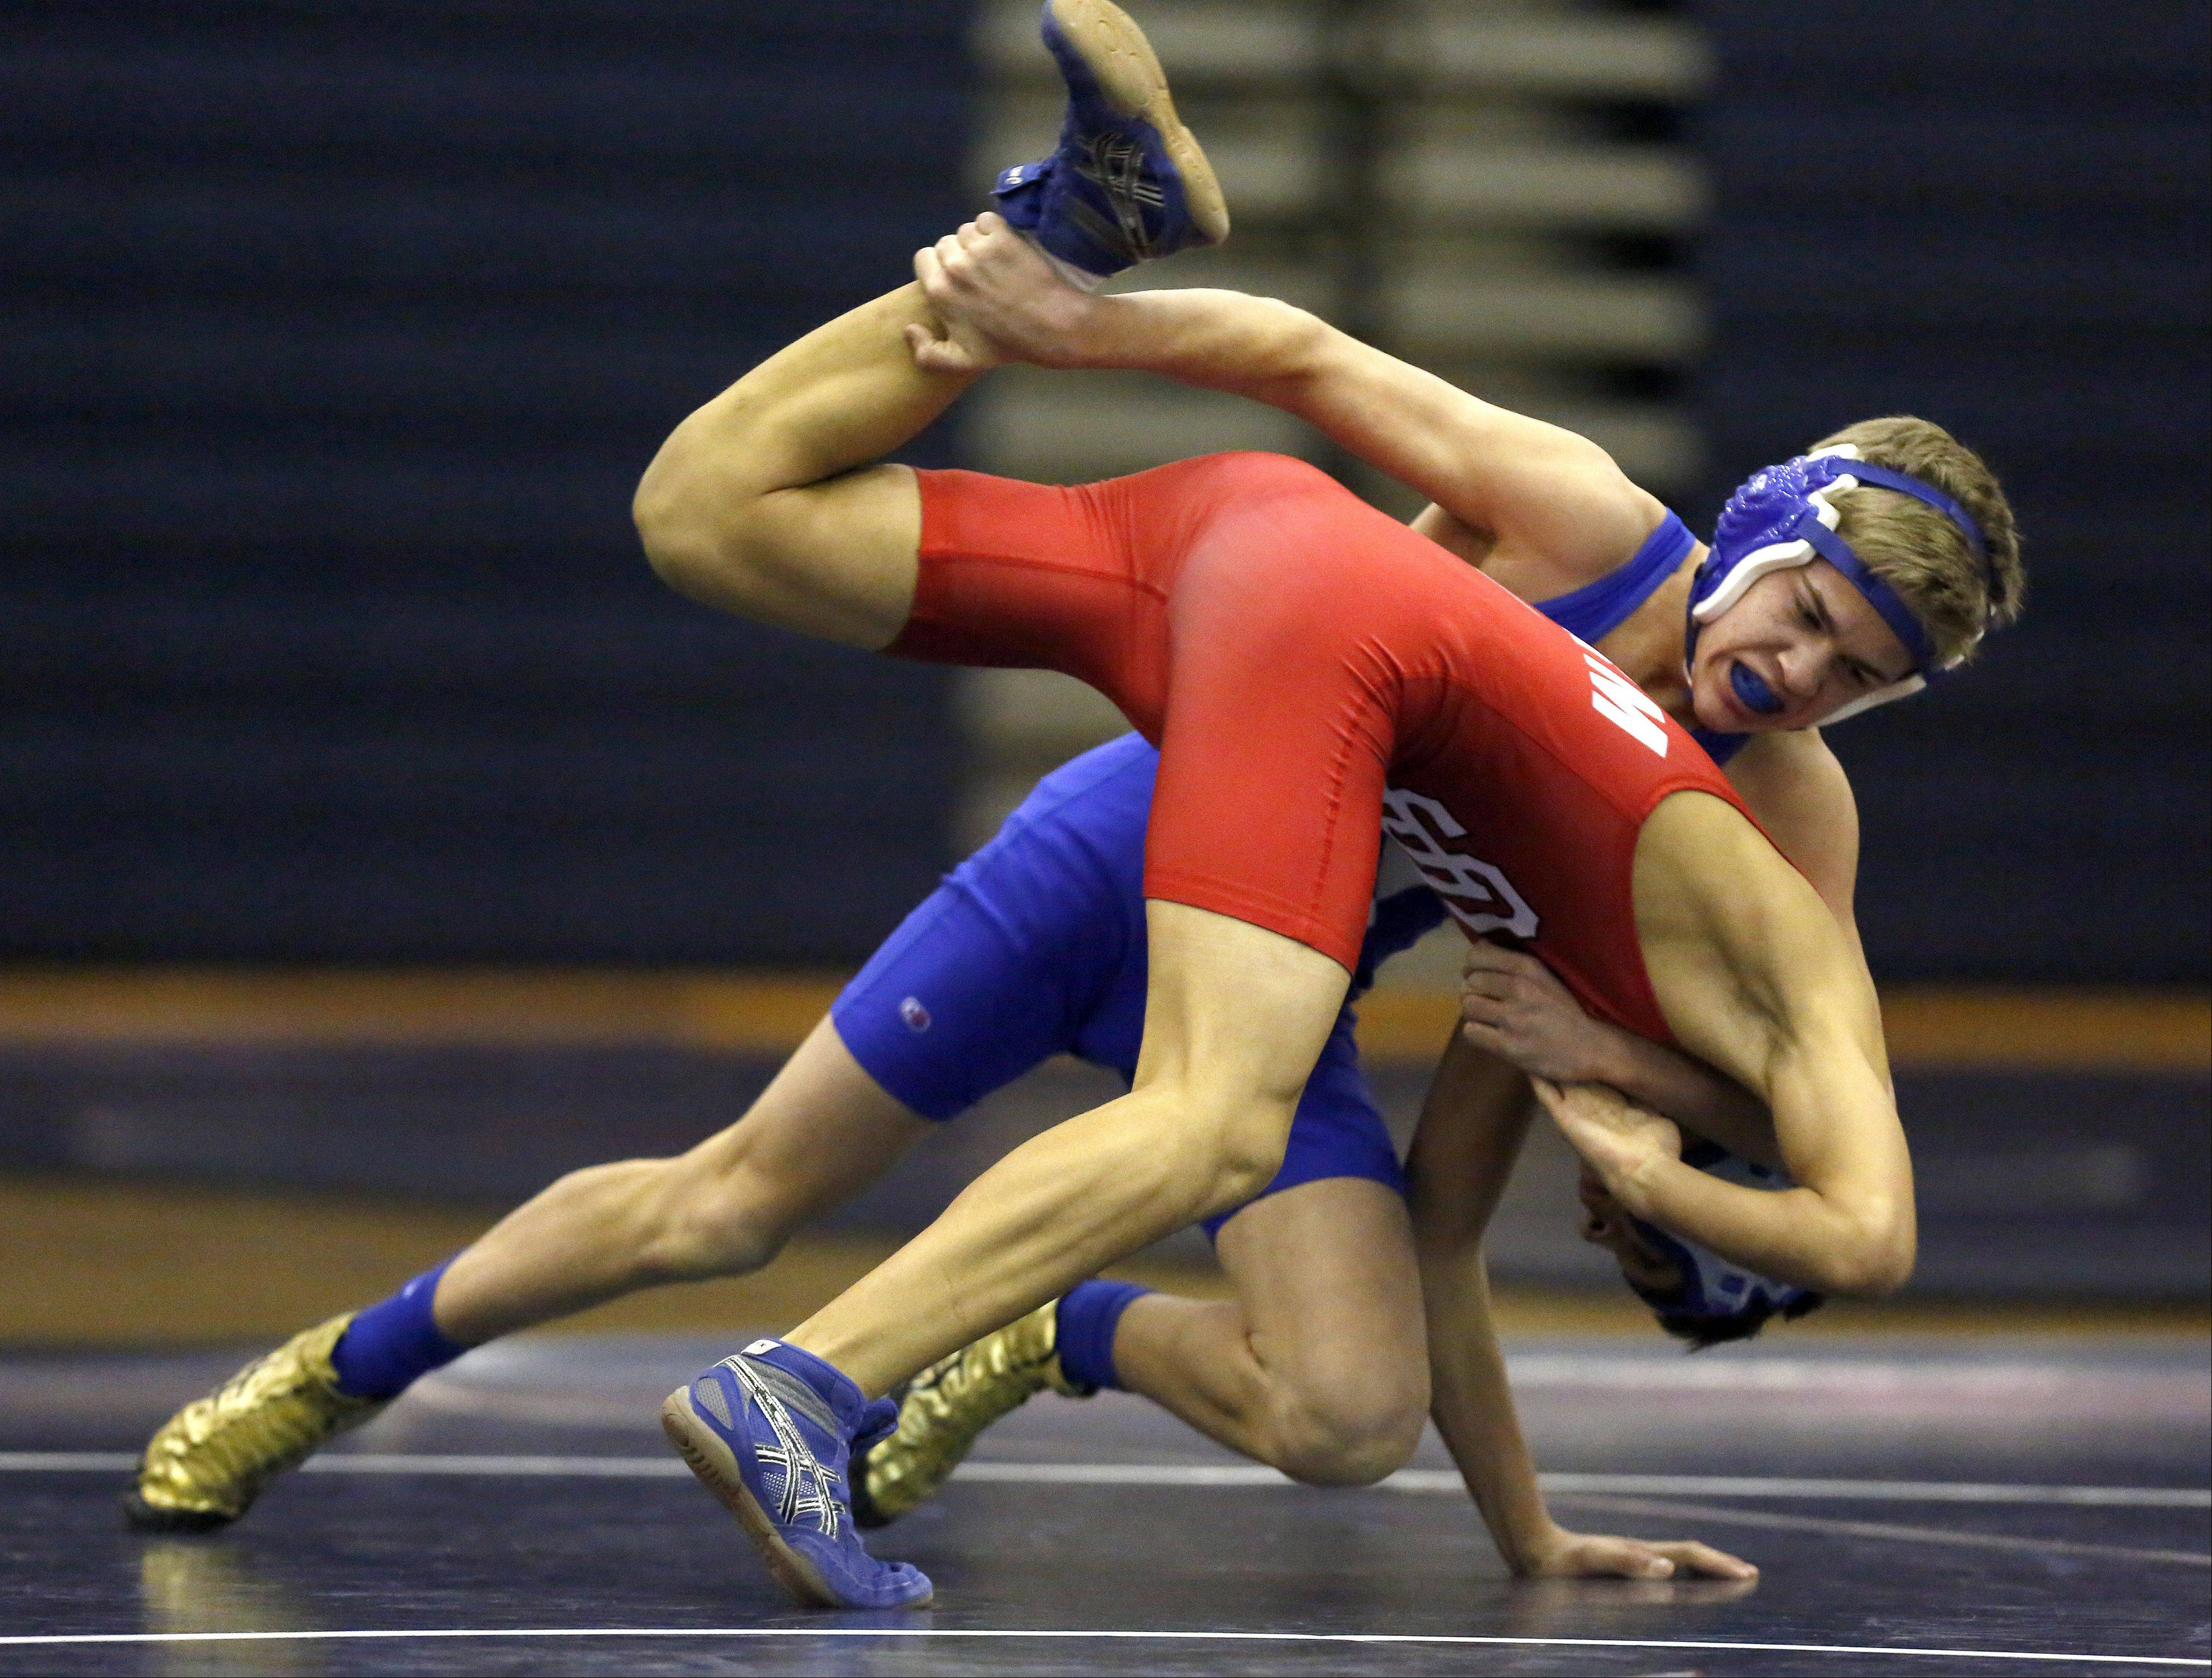 South Elgin�s Jordan Hoke-Ruiz and Geneva�s Nick Anderson battle at the 120 weight class during wrestling at South Elgin Saturday.